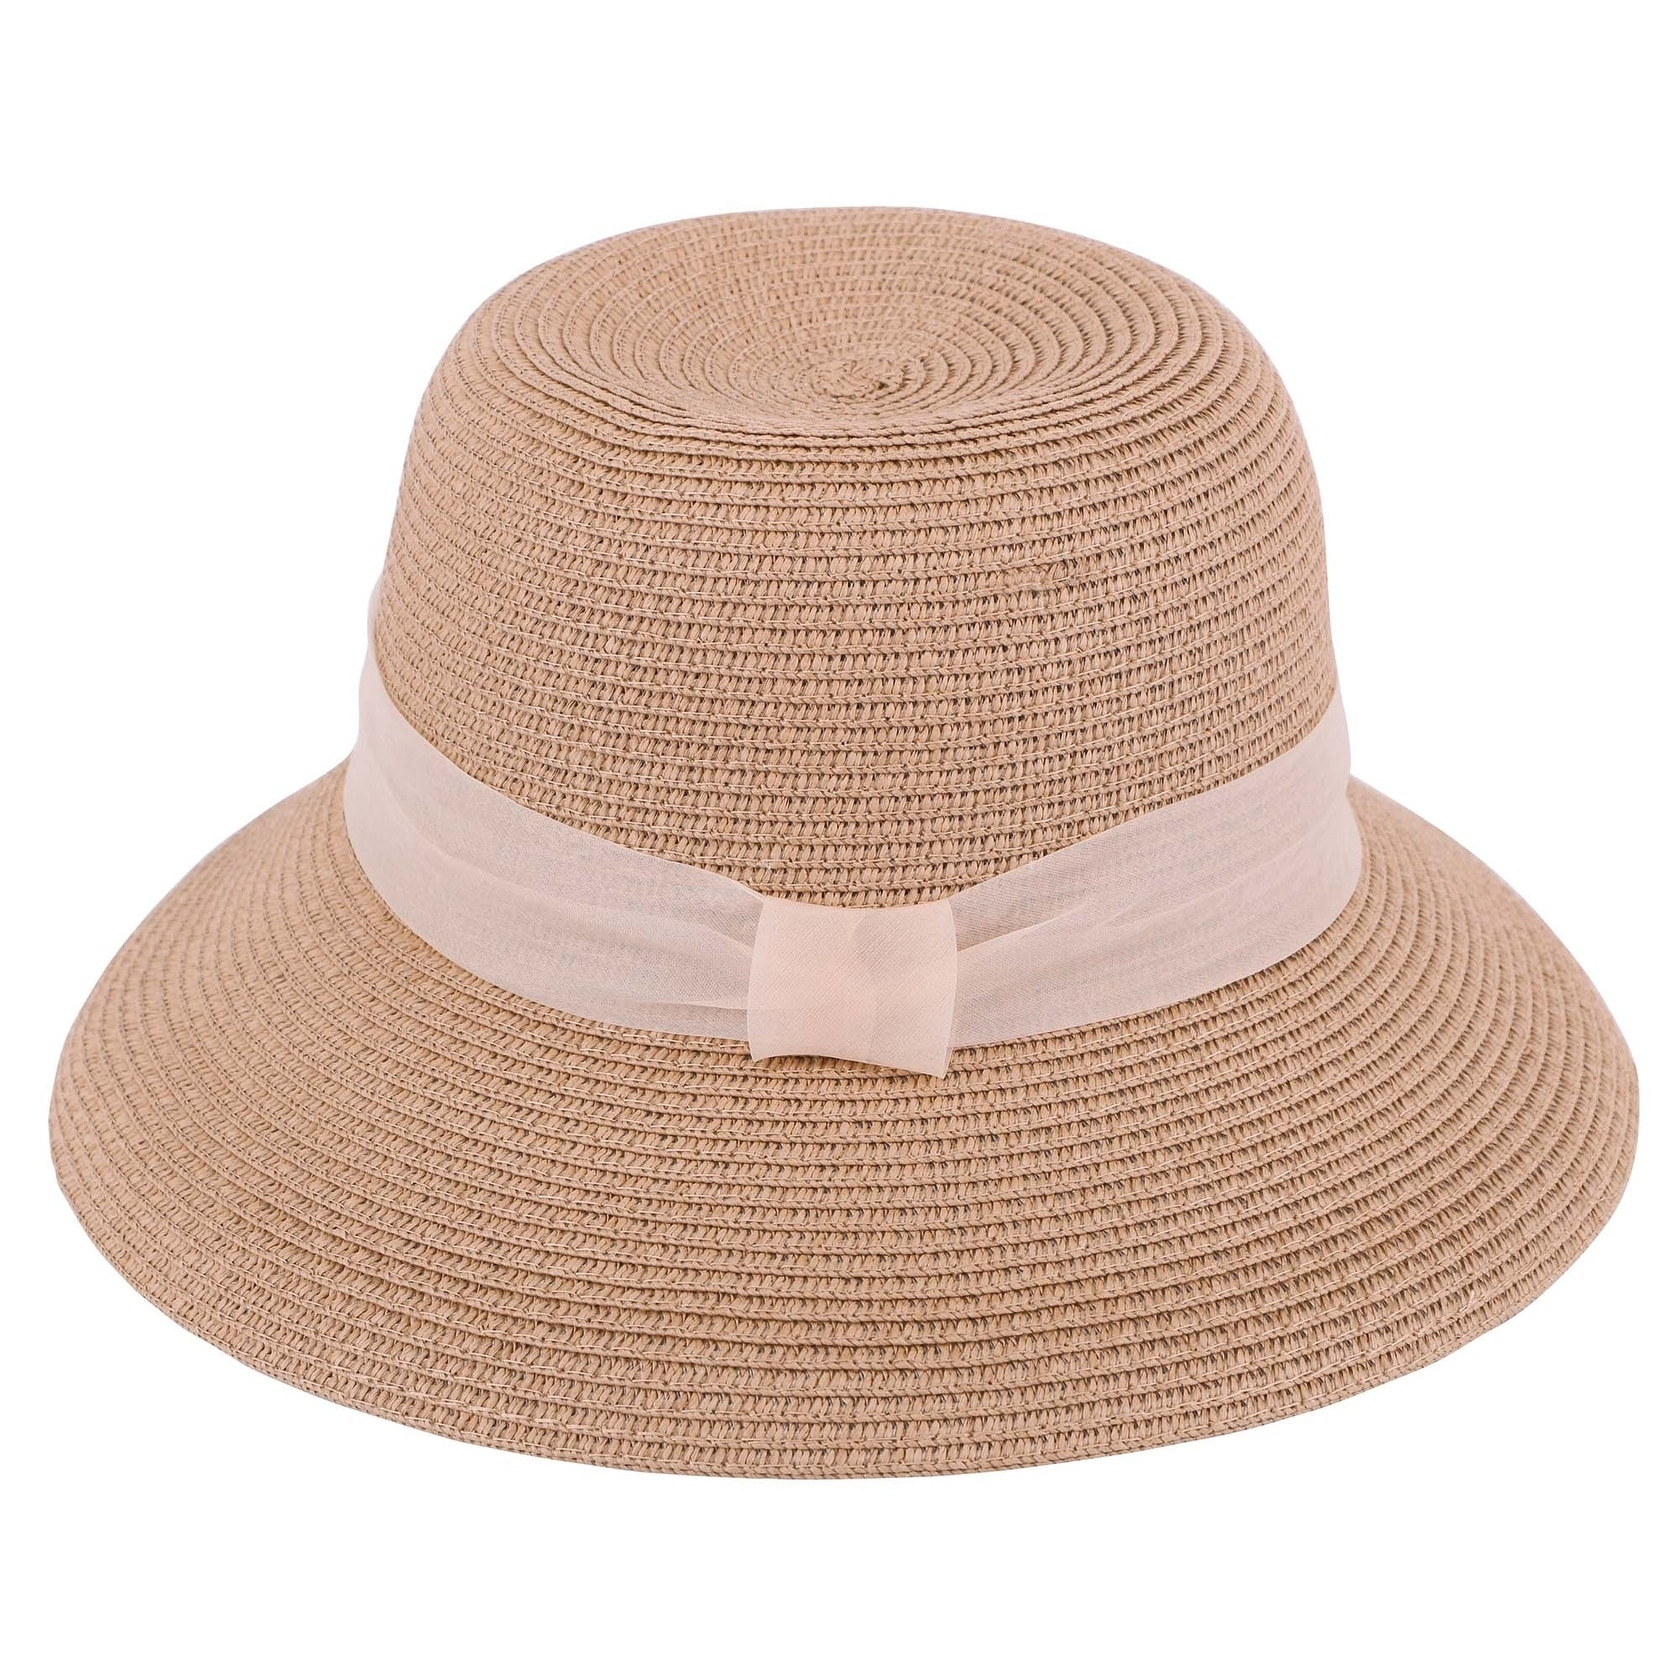 Lullaby Womens Foldable UPF 50 Structured Curved Wide Brim Bucket Straw Sun Hat